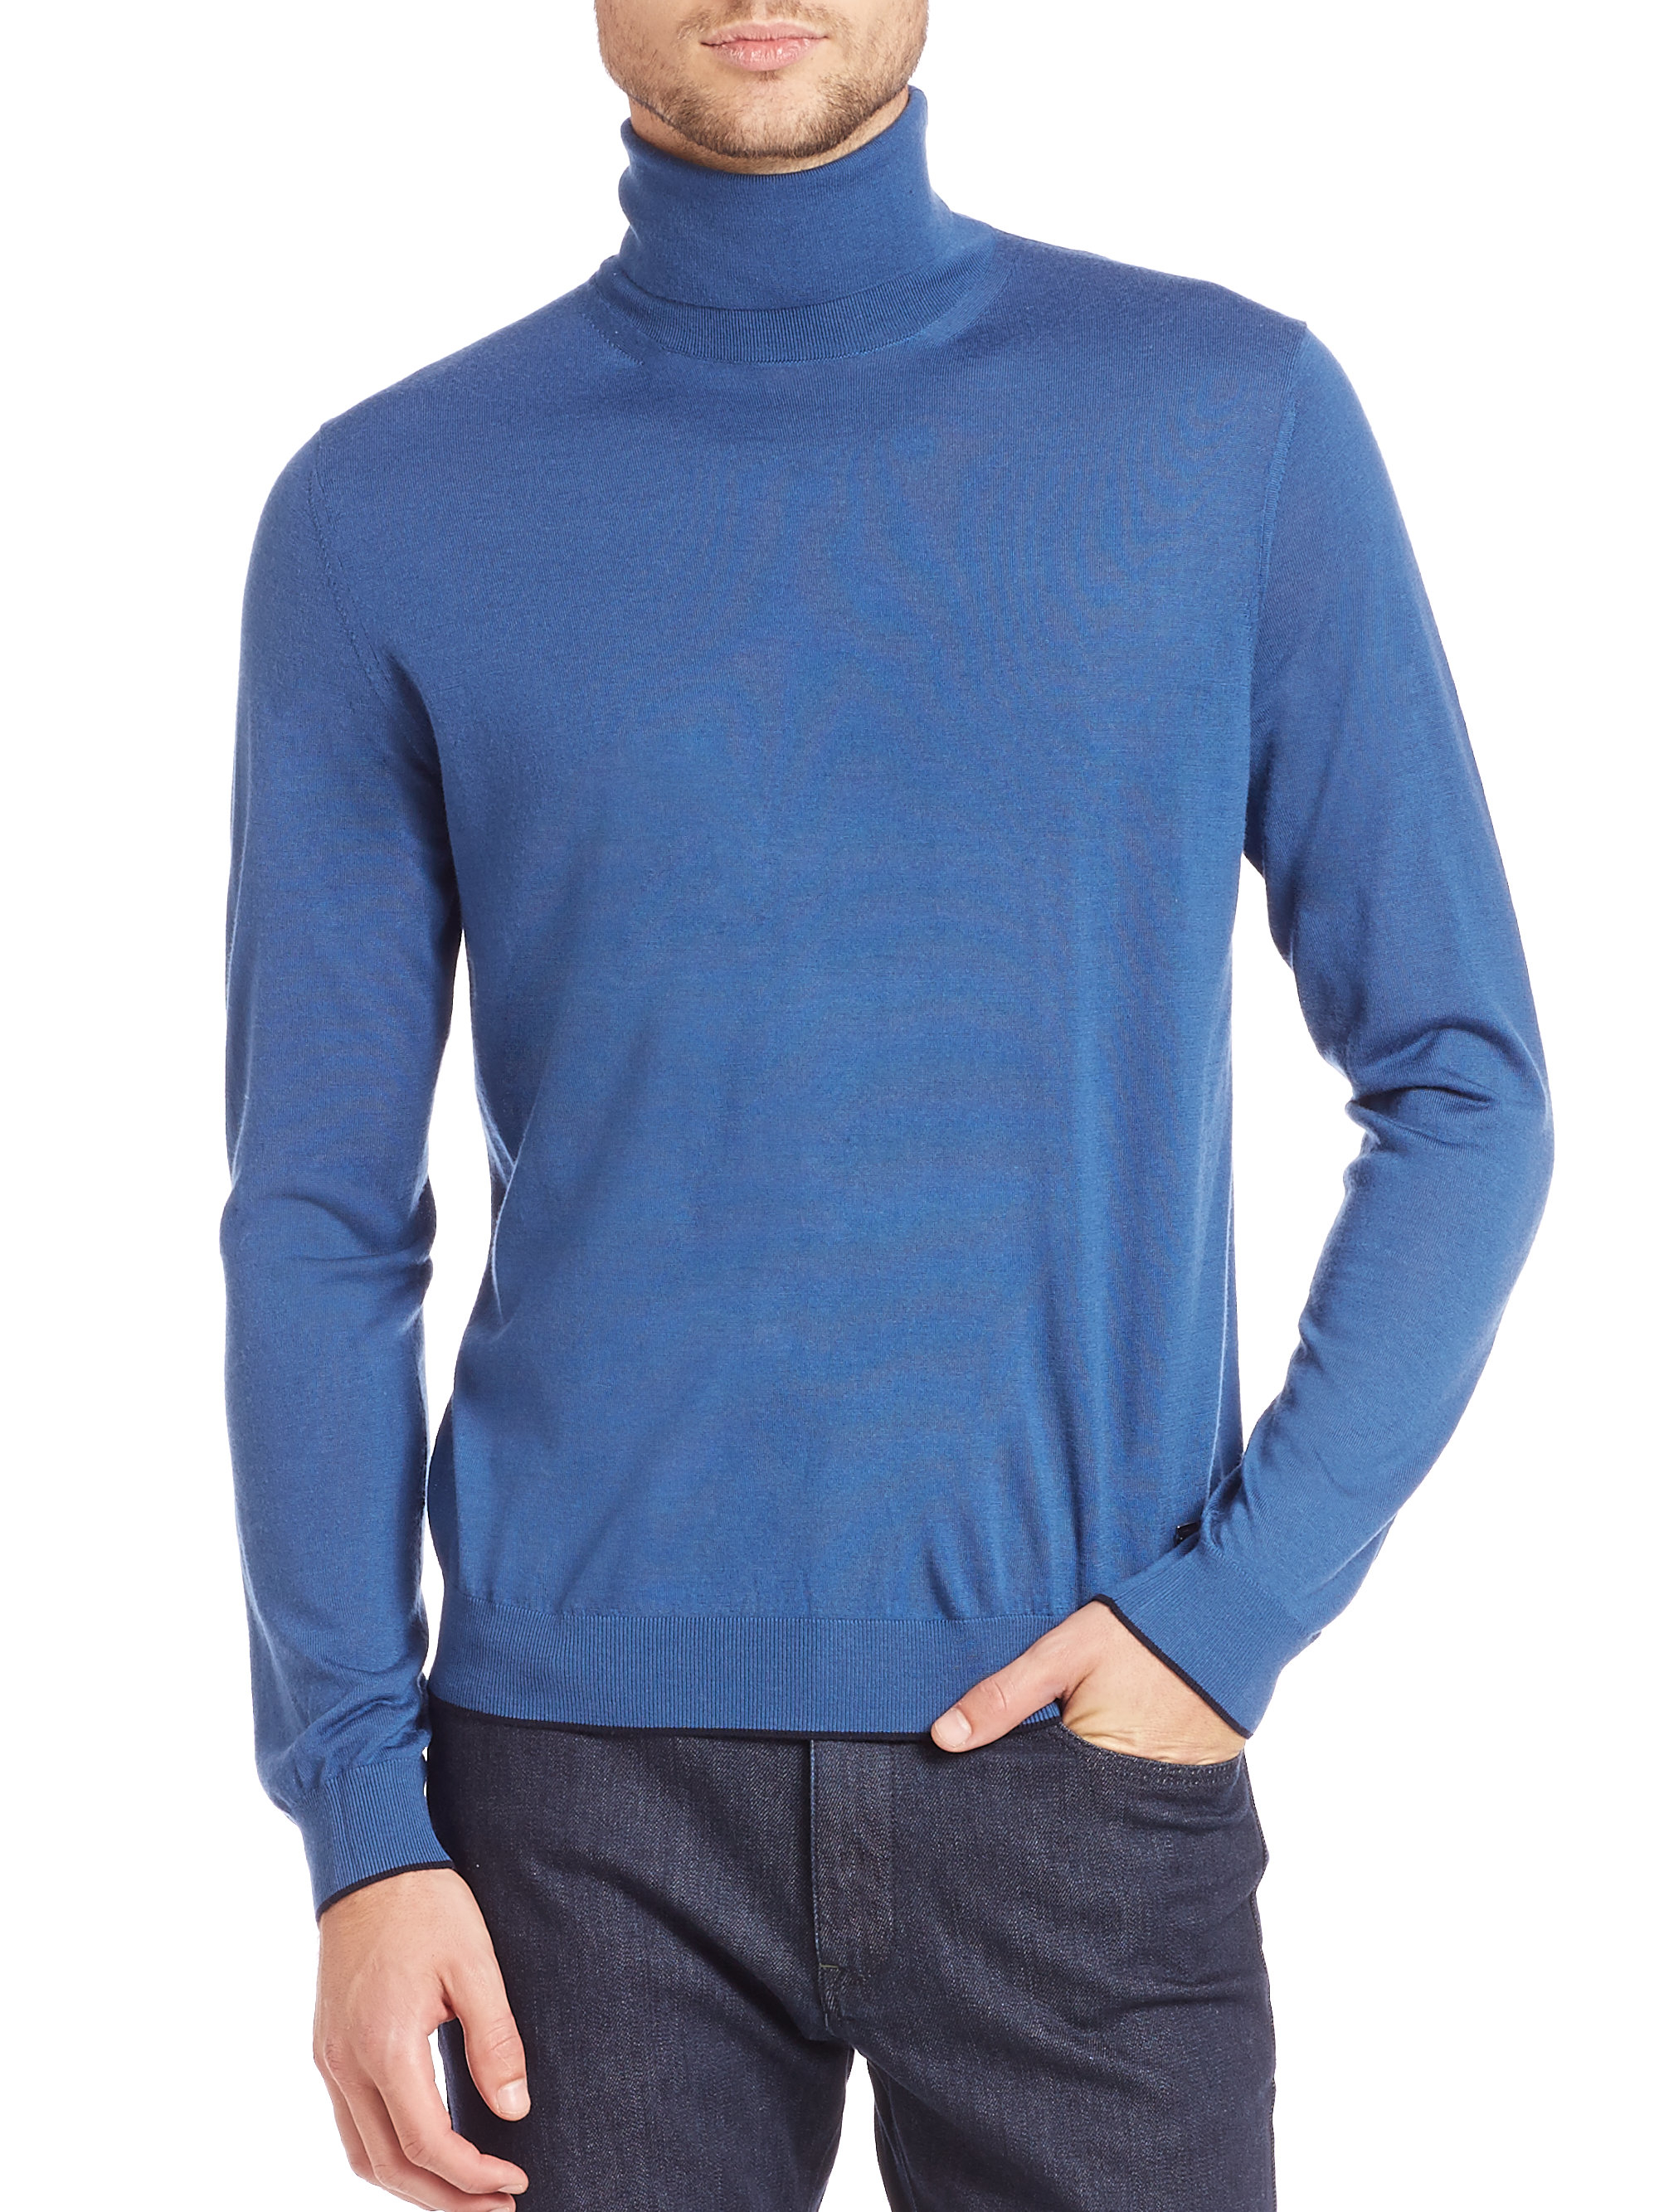 Z zegna Merino Wool Turtleneck Sweater in Blue for Men | Lyst